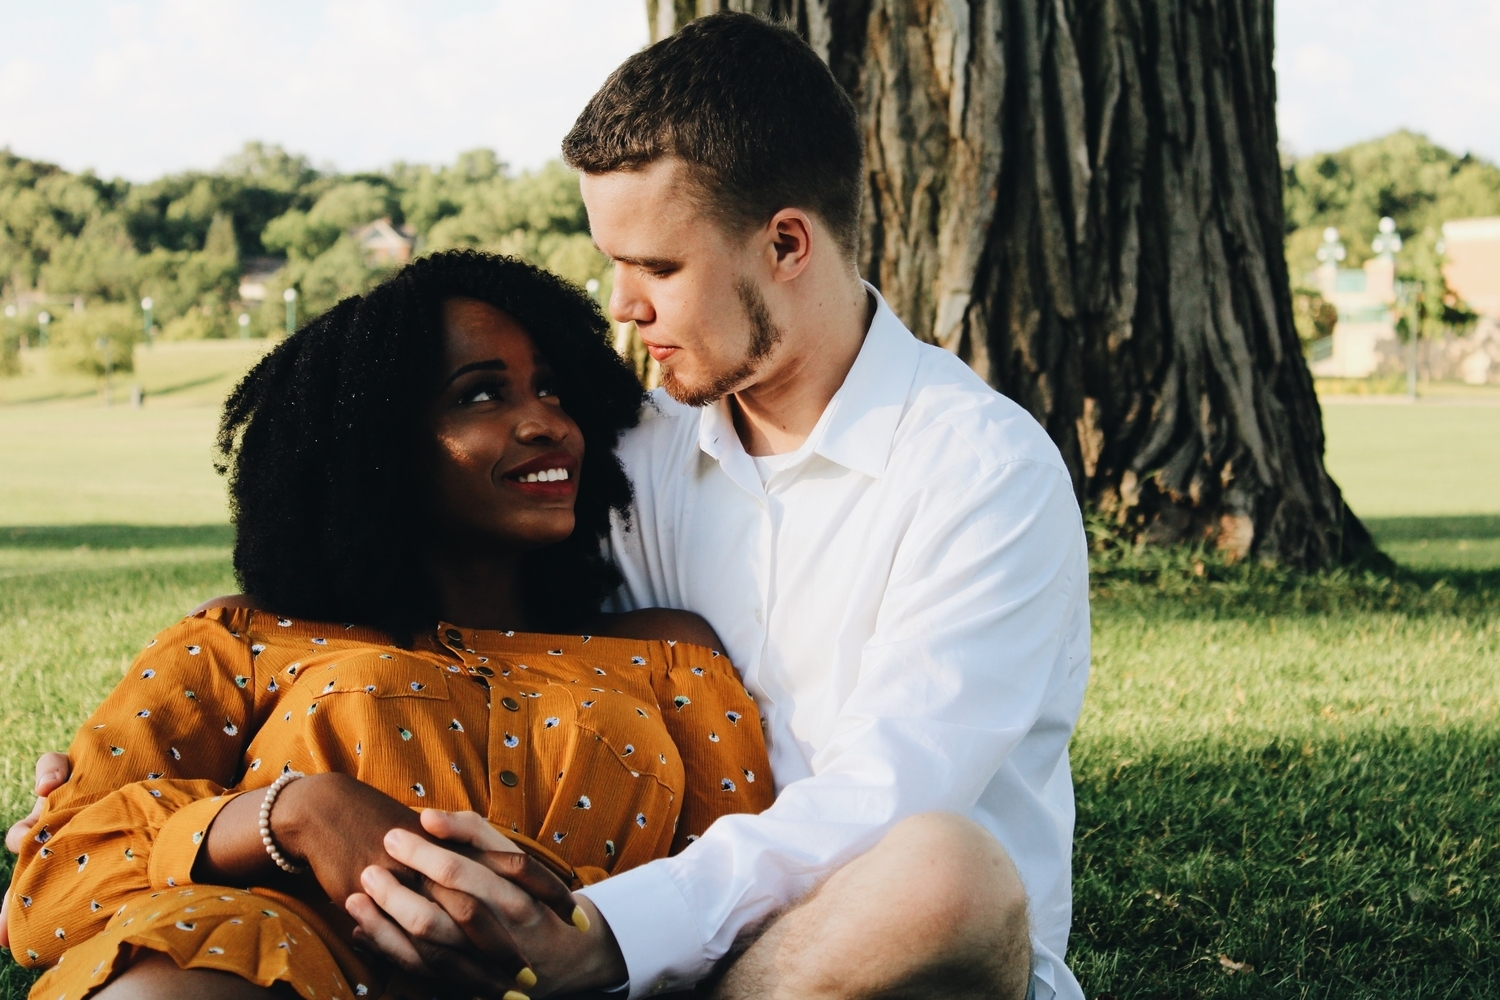 Interracial dating sites 1 - The most freaky and enjoyable objects to use as a sex toy or dildo